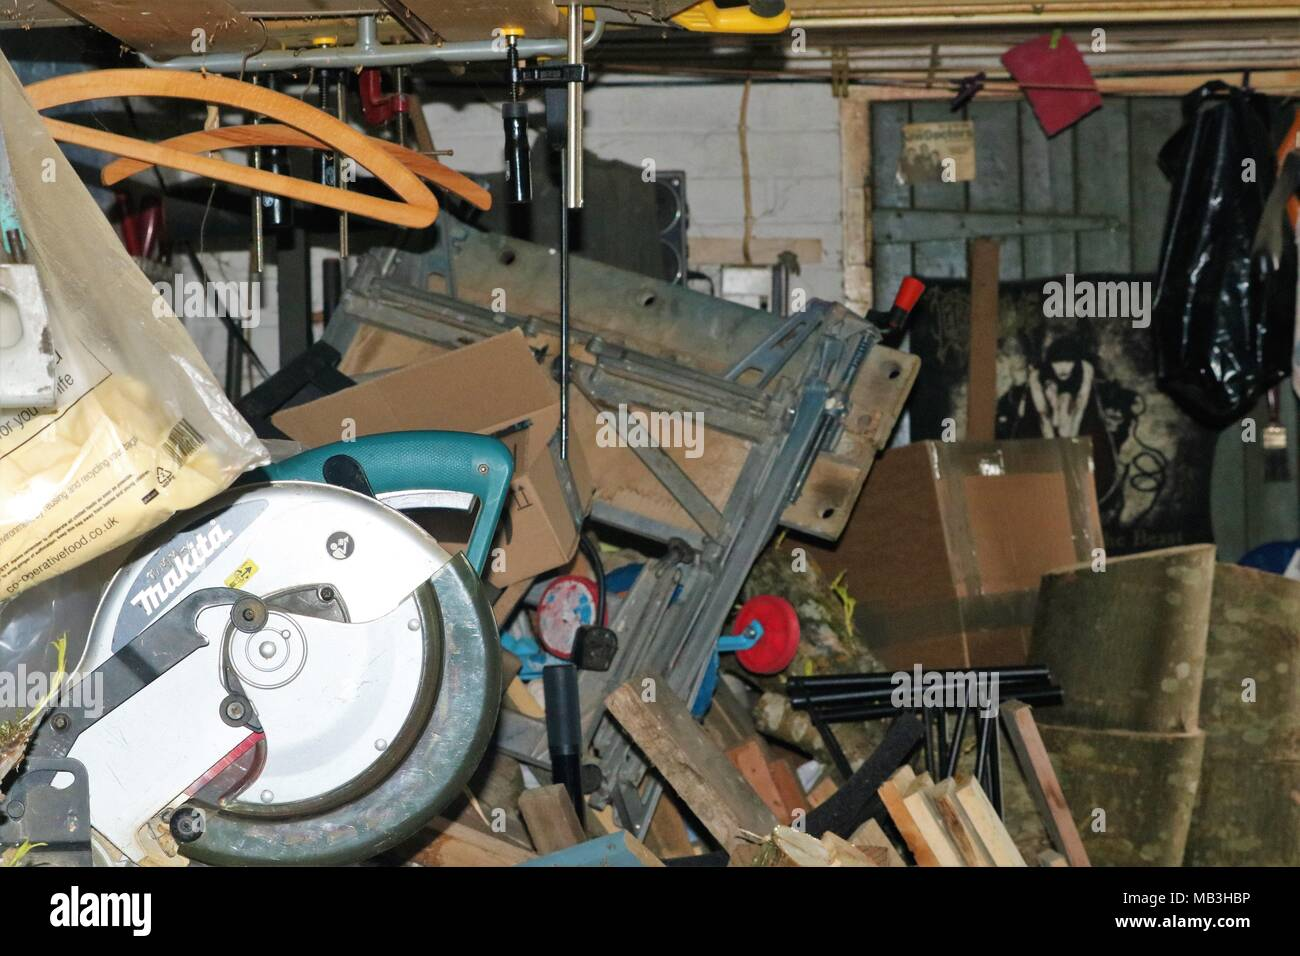 Very cluttered garage filled with wood, power tools, tools, work bench, child bike, and general rubbish - Stock Image